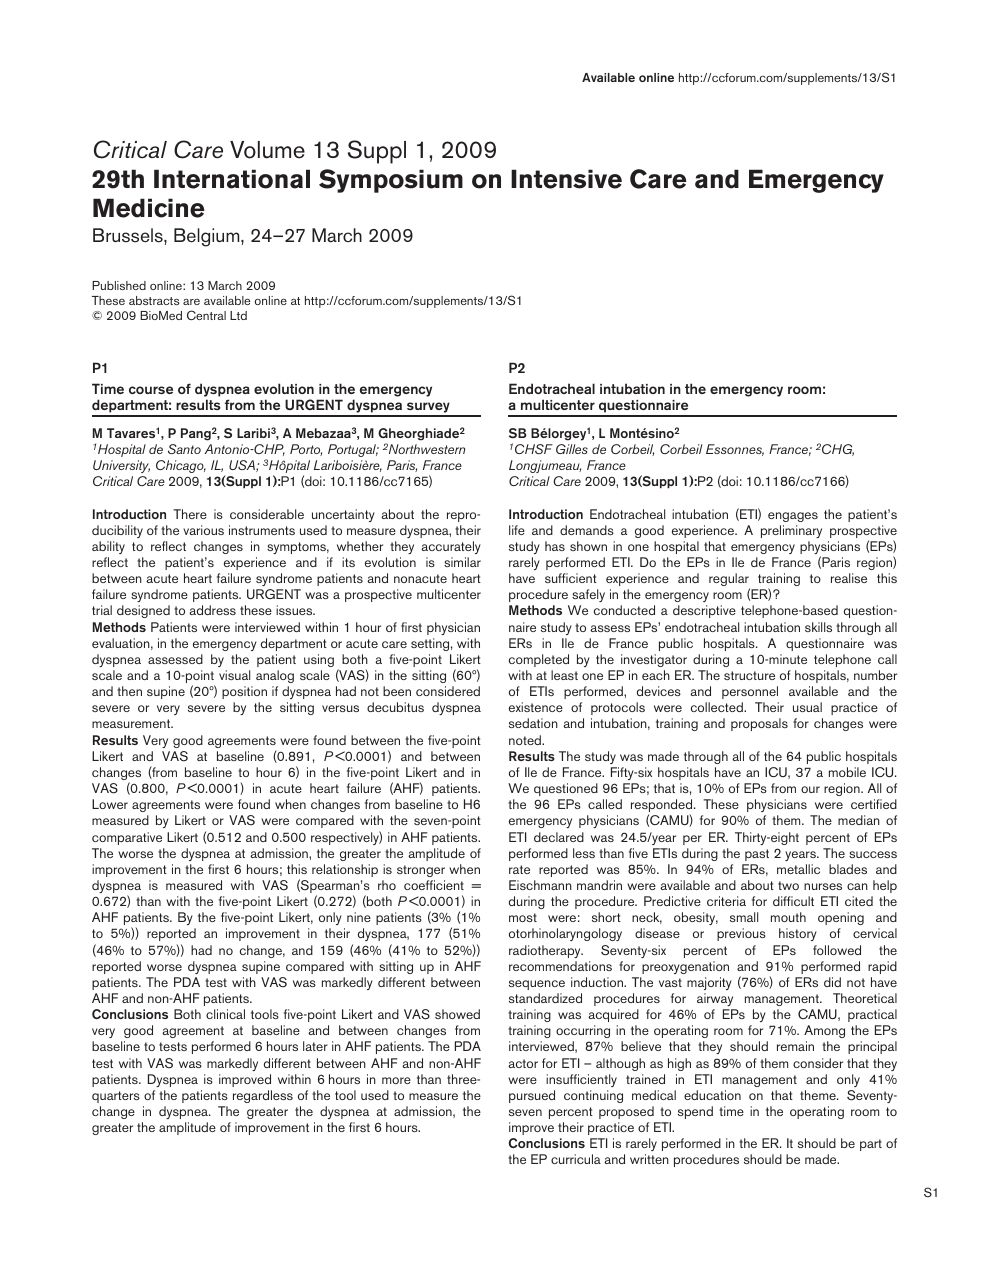 Is it safe to thrombolyse patients with pulmonary embolism